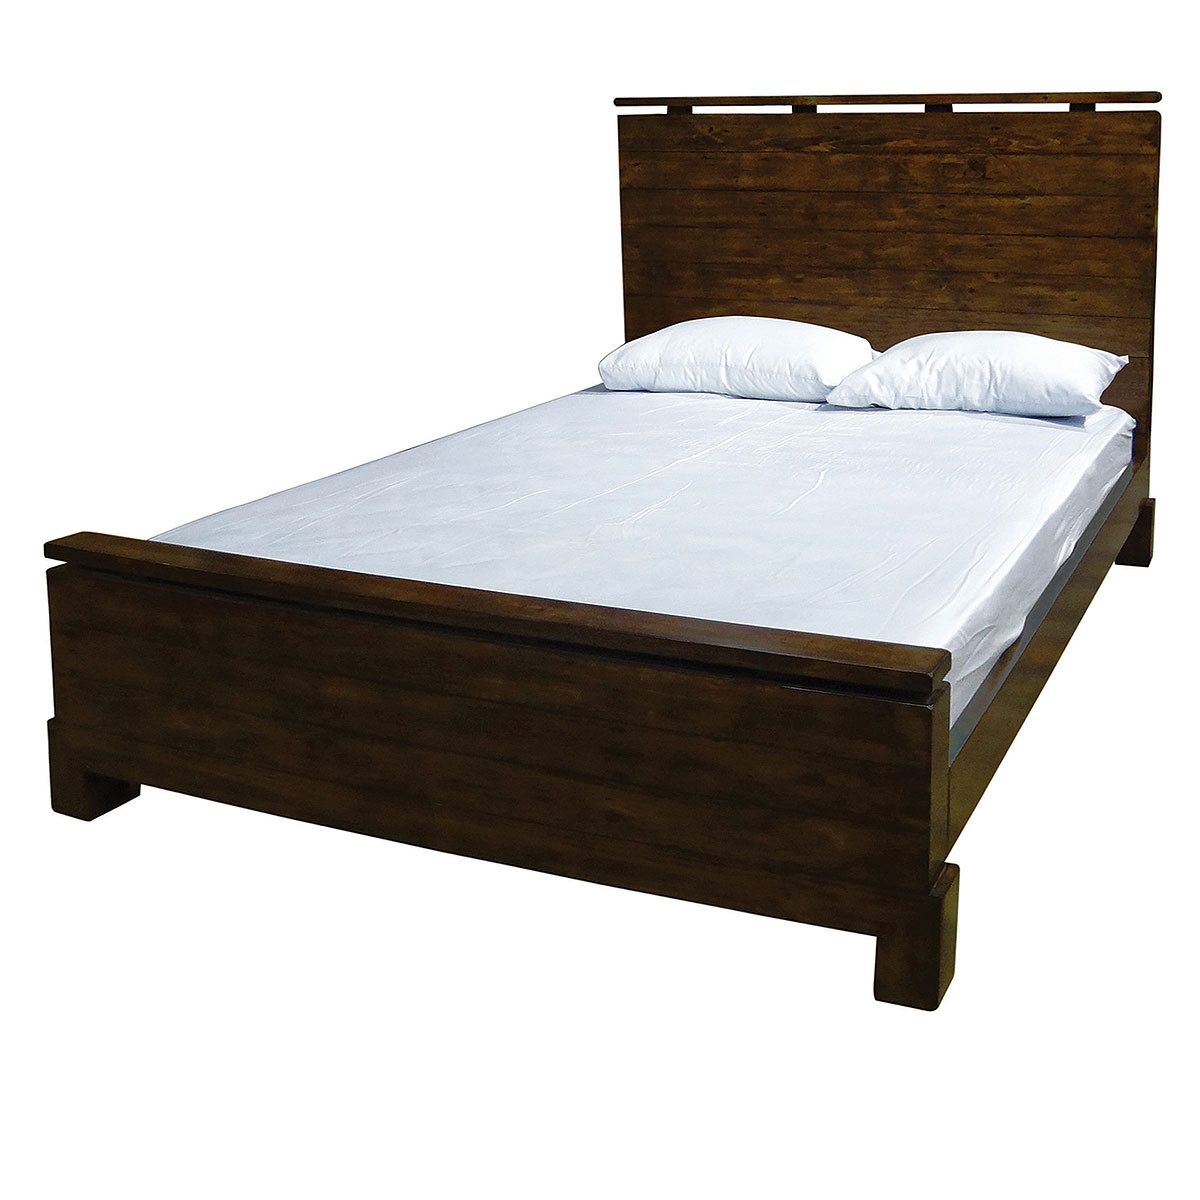 Angora Reclaimed Wood Queen Platform Bed Acorn Zin Home